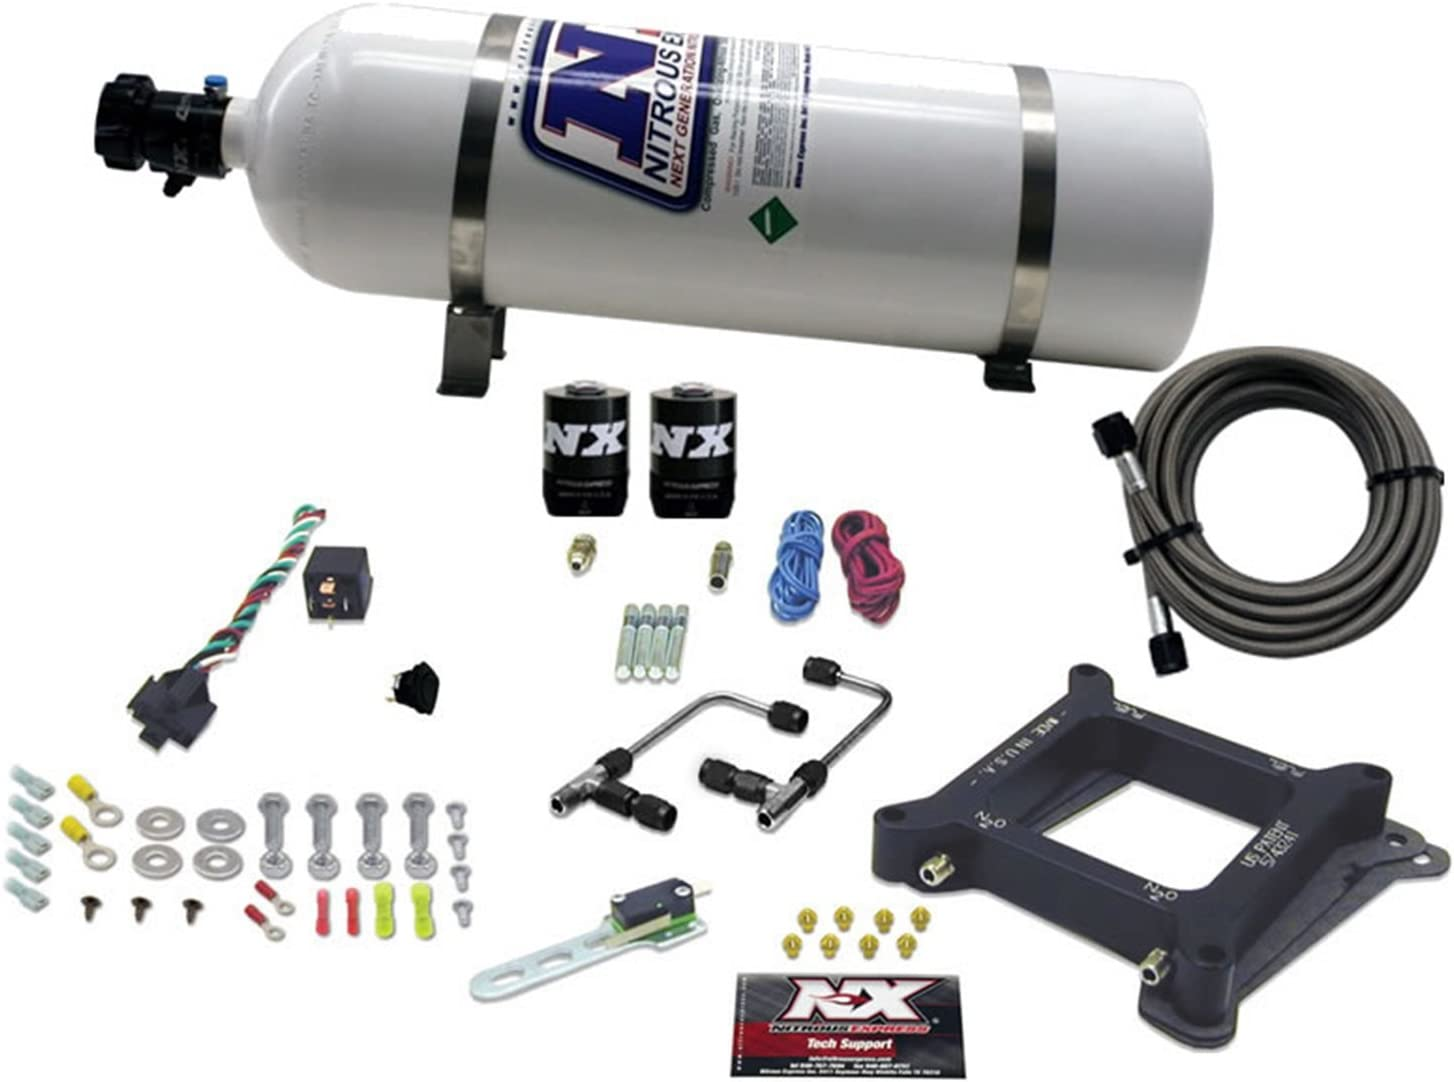 Nitrous Express 30040-05 4150 50-300 HP 4-BBL Gasoline Conventional Stage 6 Plate System with 5 lbs Bottle